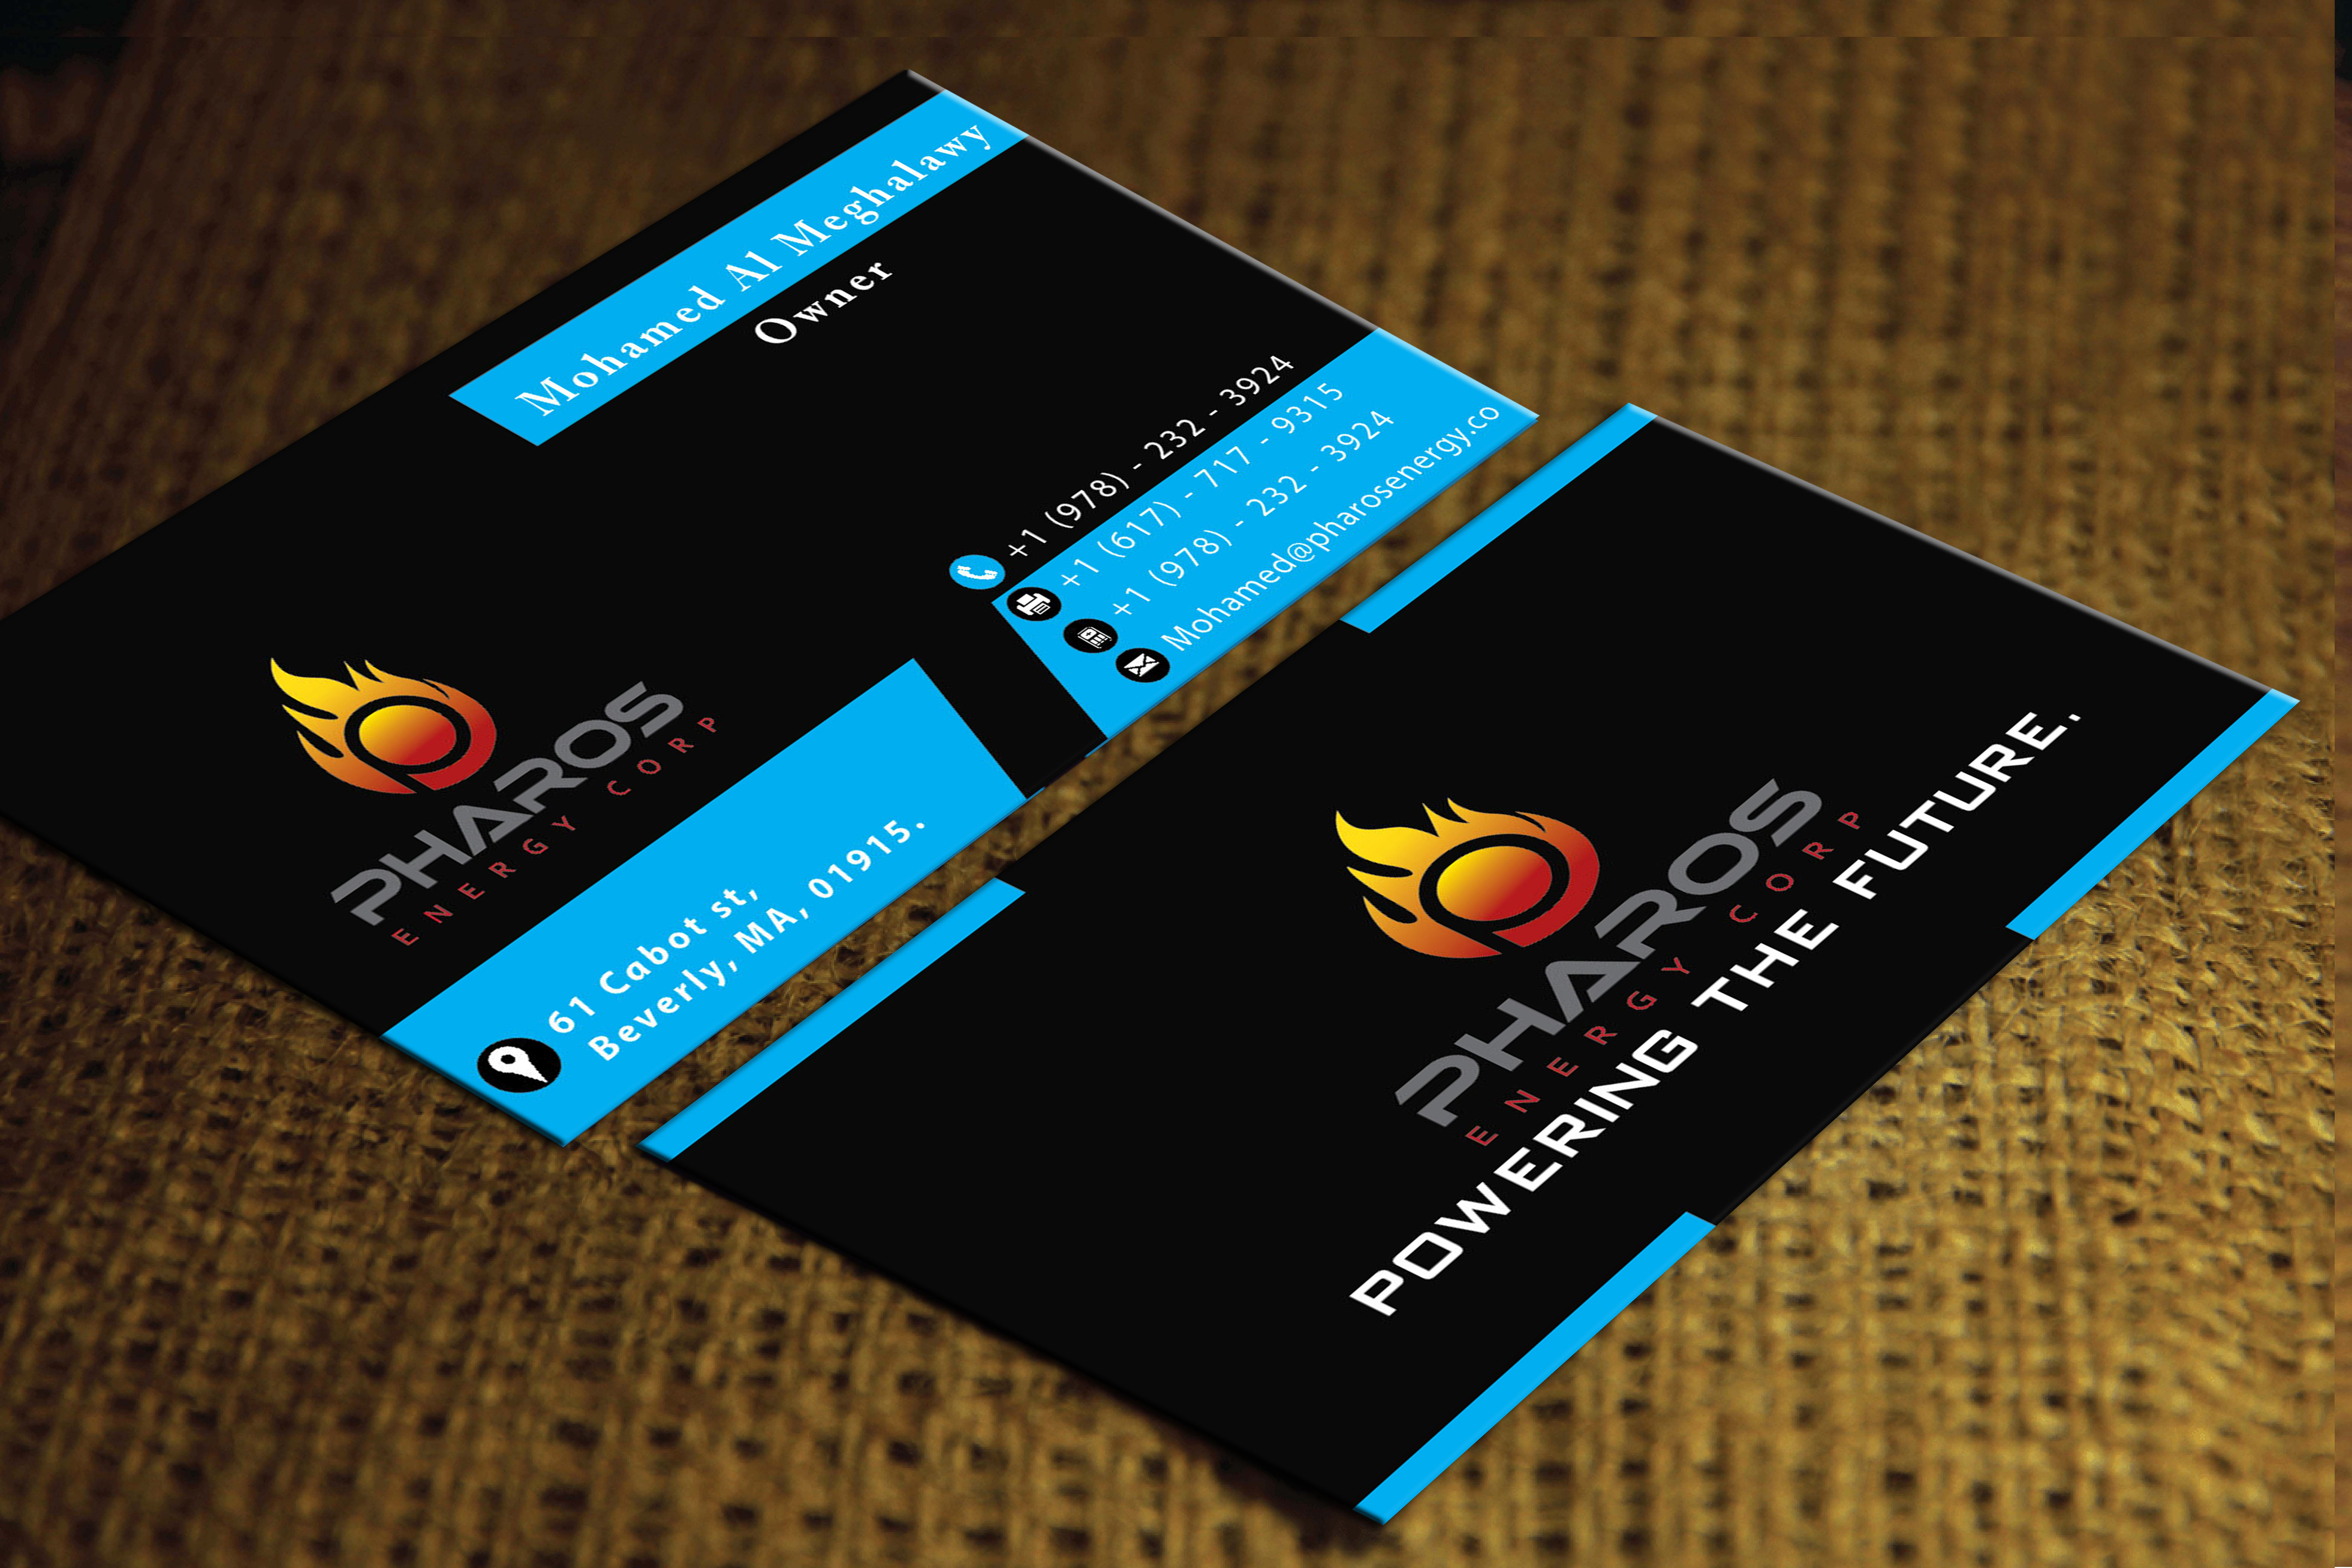 Design a professional double side Business card for 5 for $5 - SEOClerks